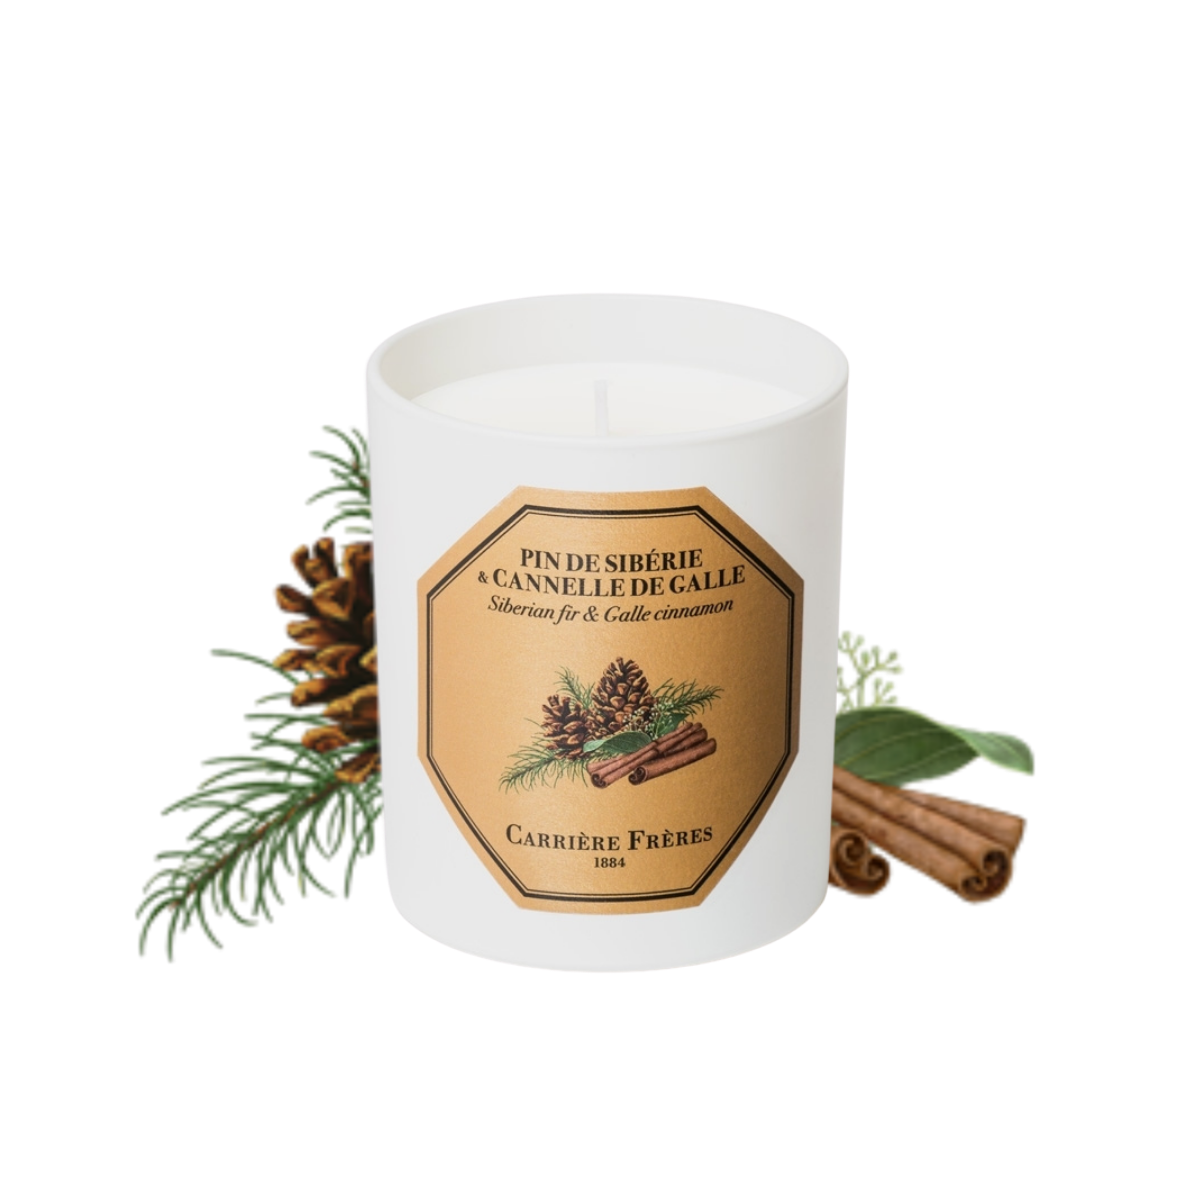 Carriere Freres 2020 Pine Cinnamon Candle 185g